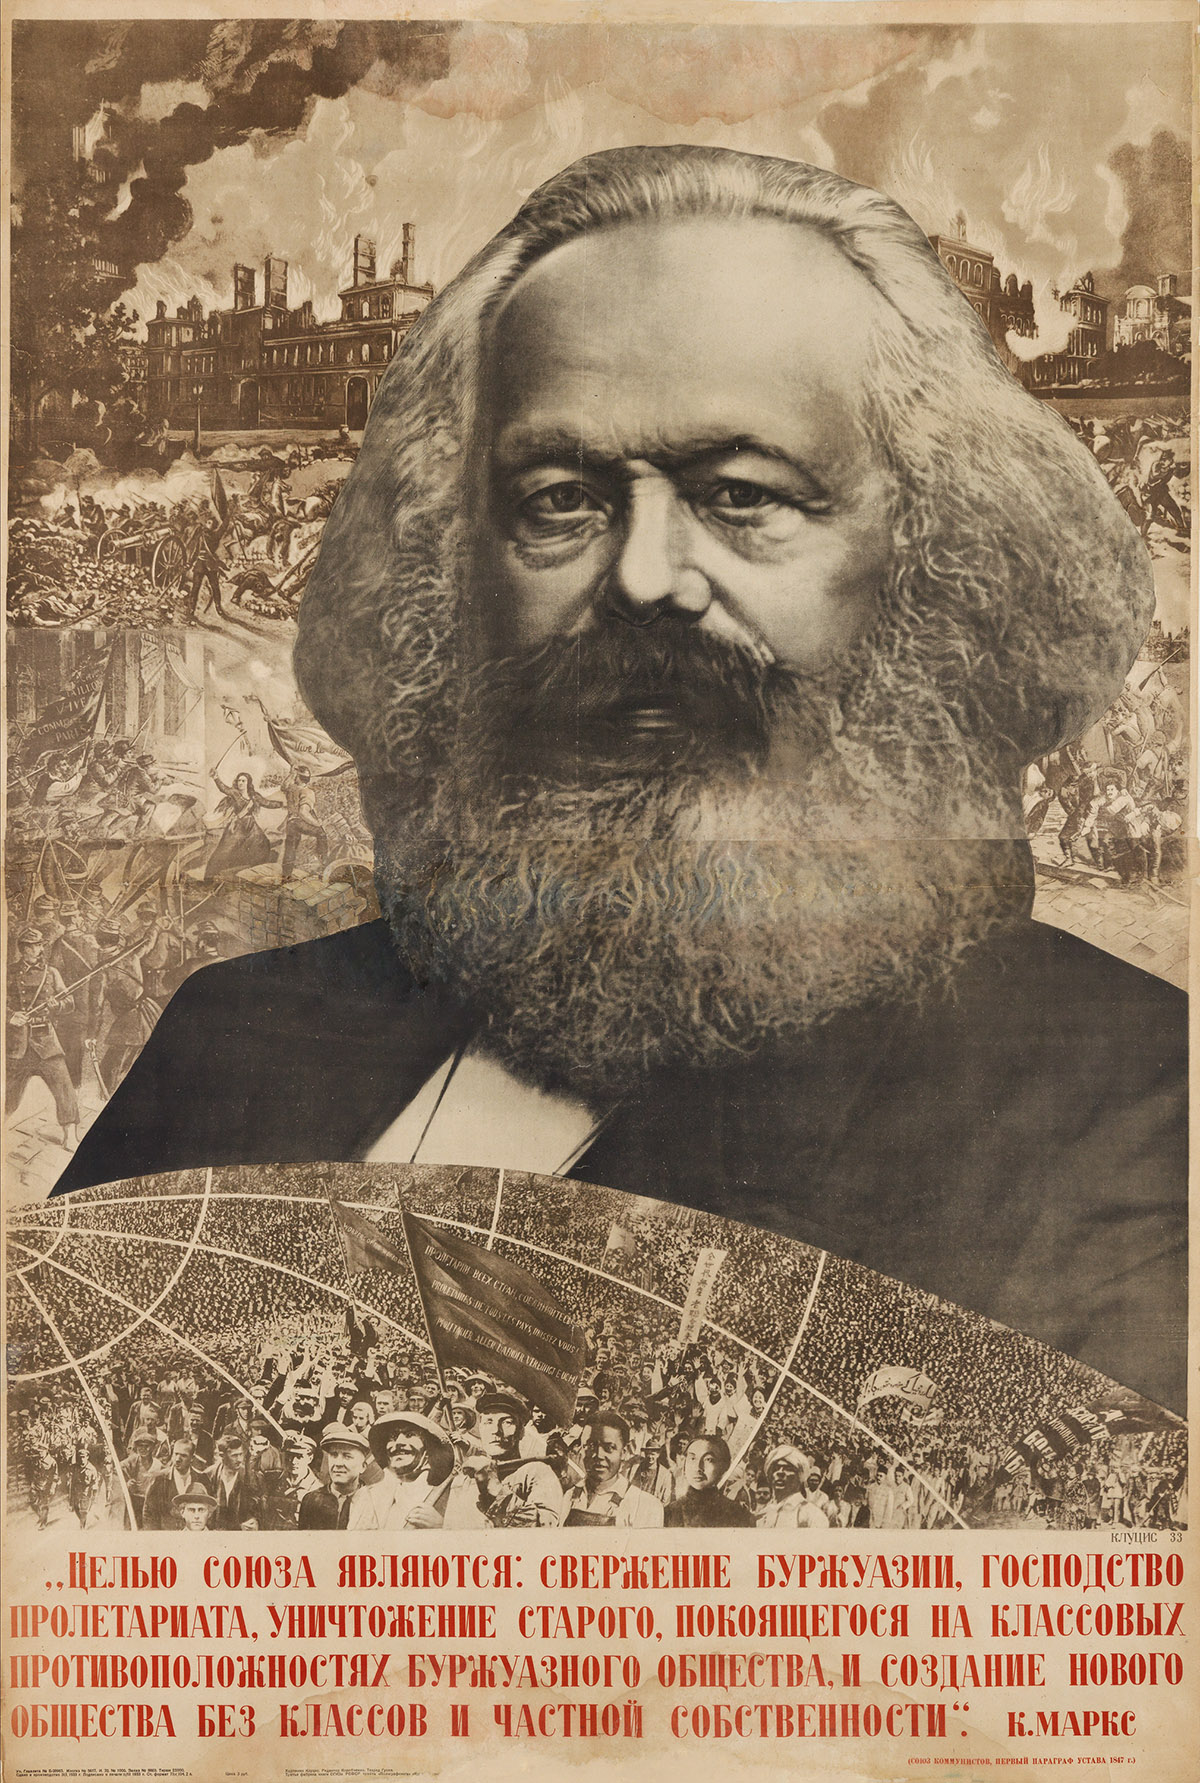 GUSTAV KLUTSIS (1895-1938). [THE PURPOSE OF THE UNION IS: THE OVERTHROW OF THE BOURGEOISIE   / KARL MARX.] 1933. 59x40 inches, 150x103